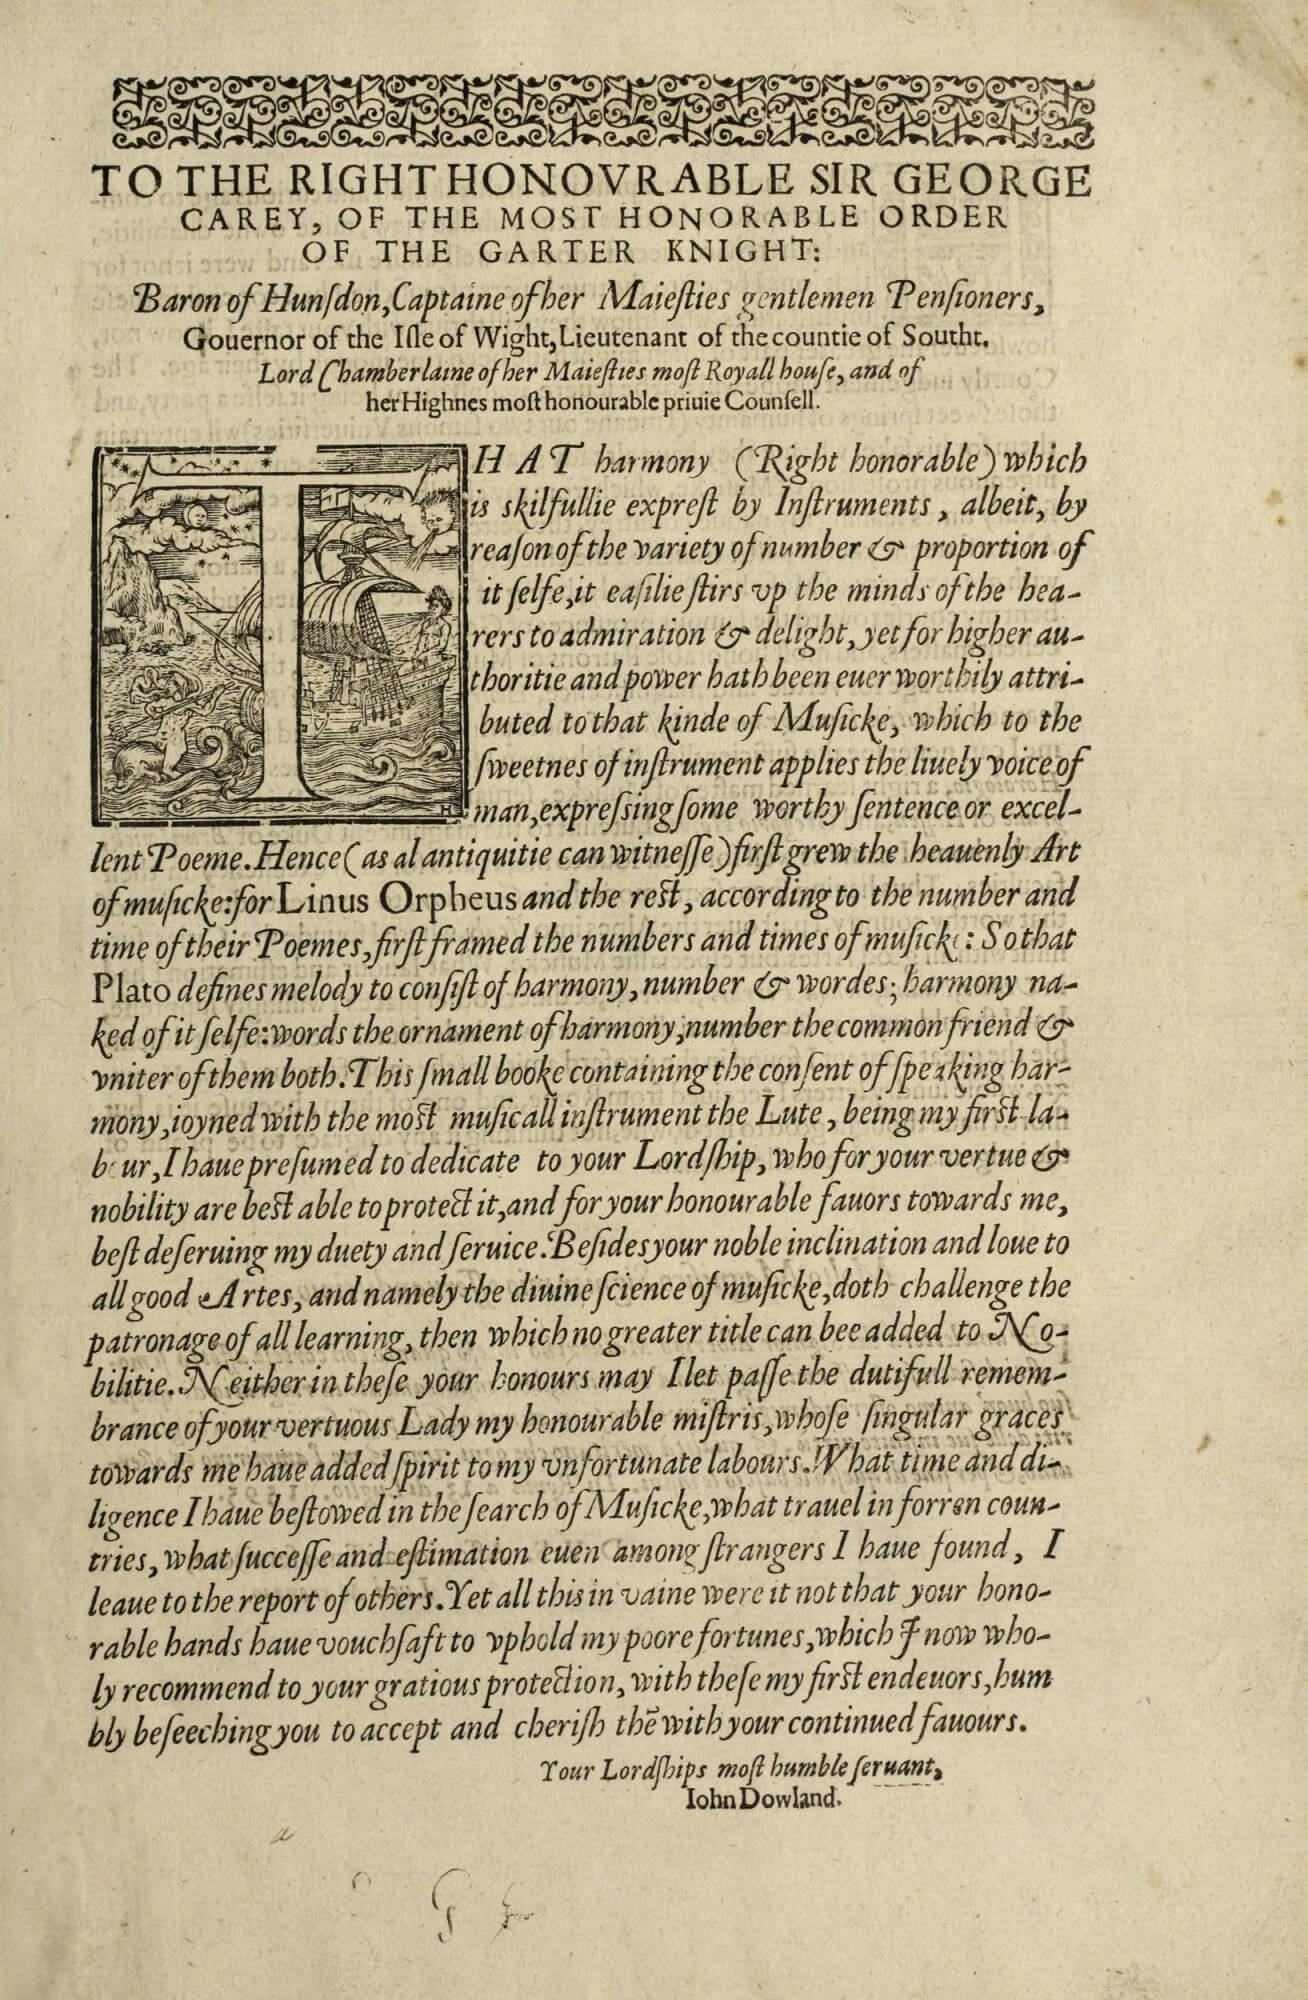 """The dedication begins with a large, historiated initial """"T"""", a woodcut depicting a sailboat."""